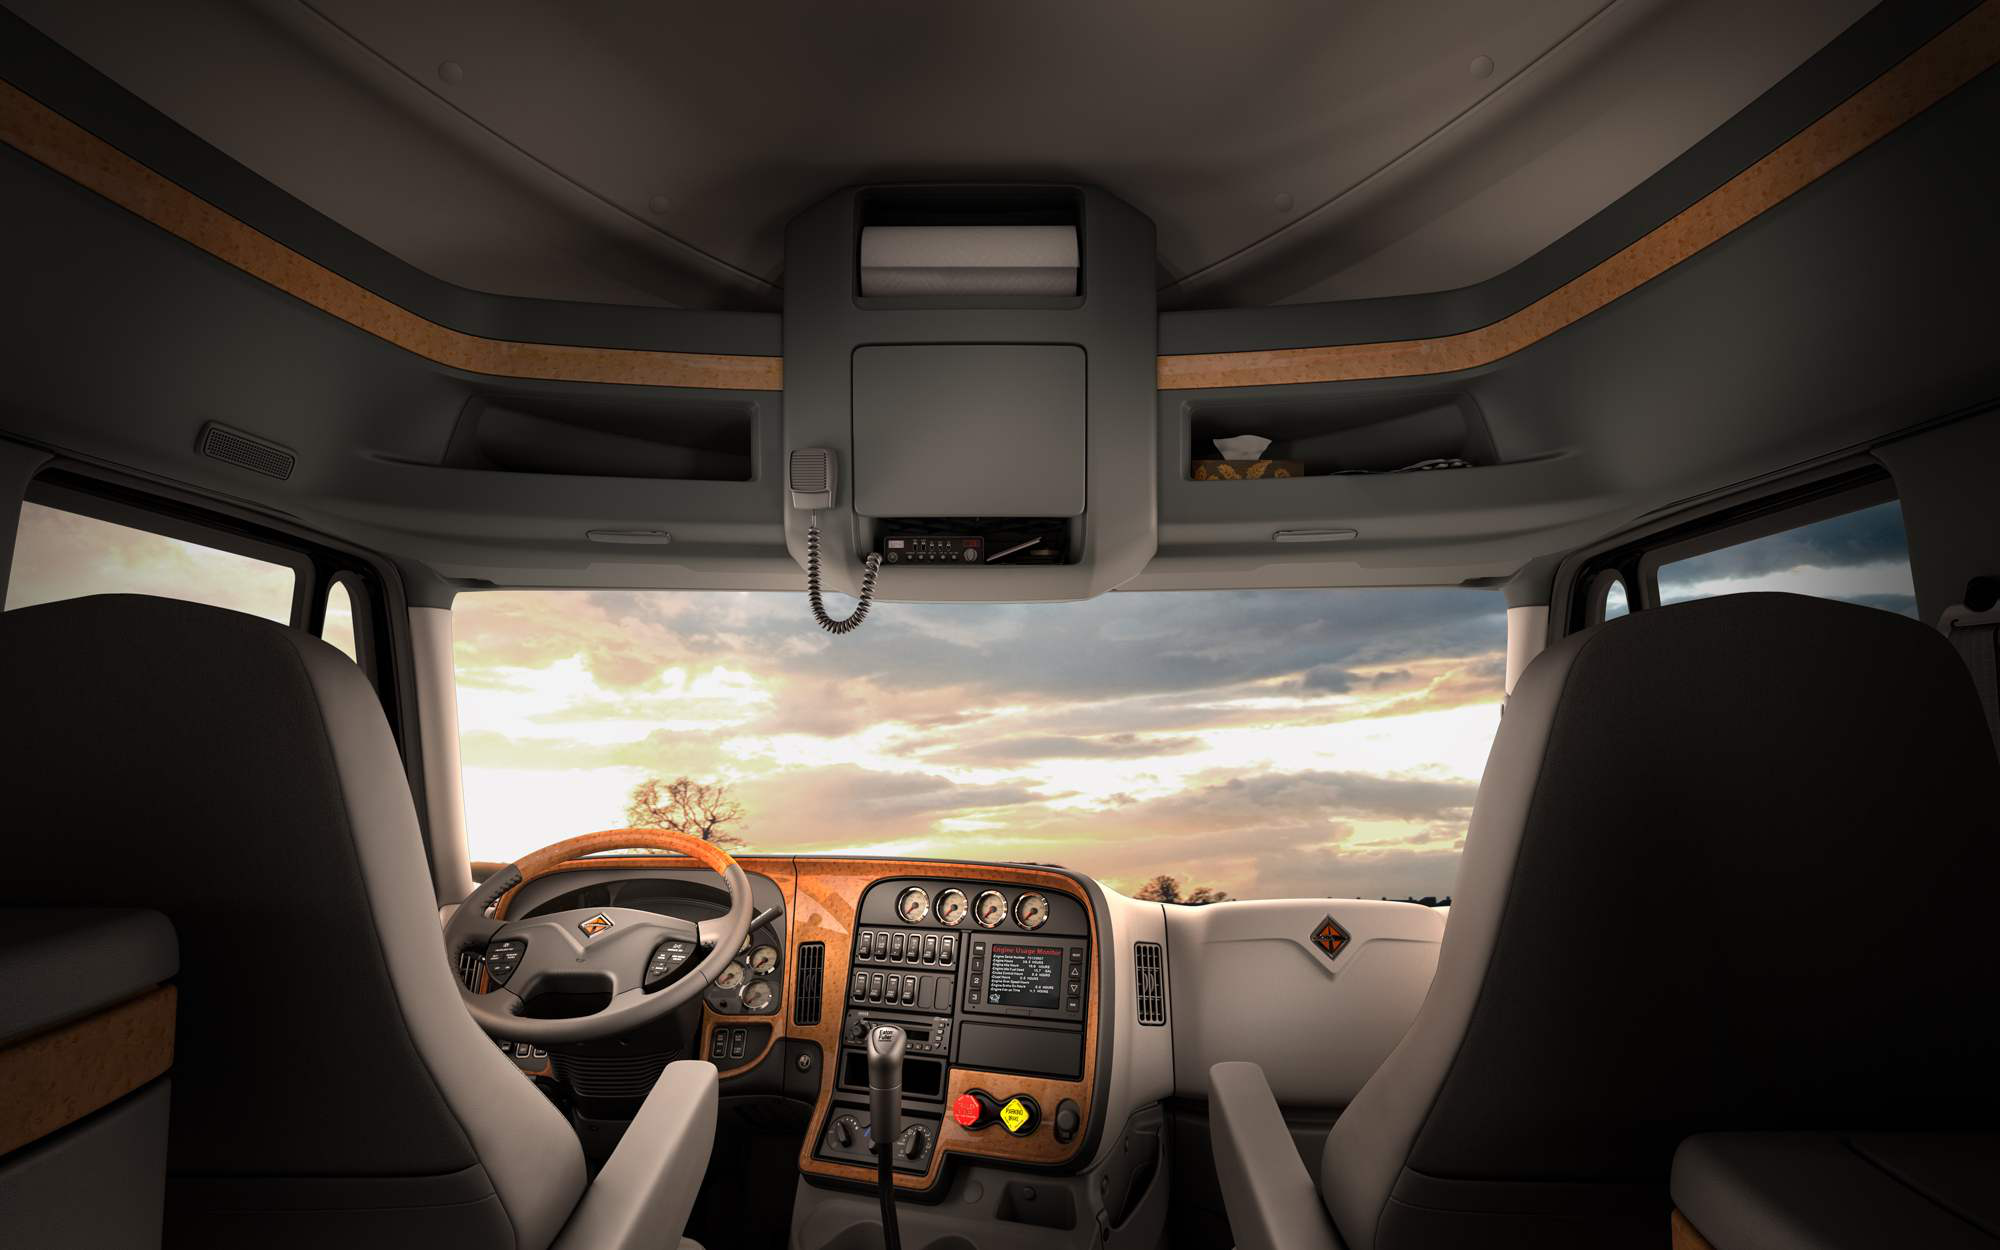 Connected and comfortable: Next-gen trucks changing the way drivers live and work on the road